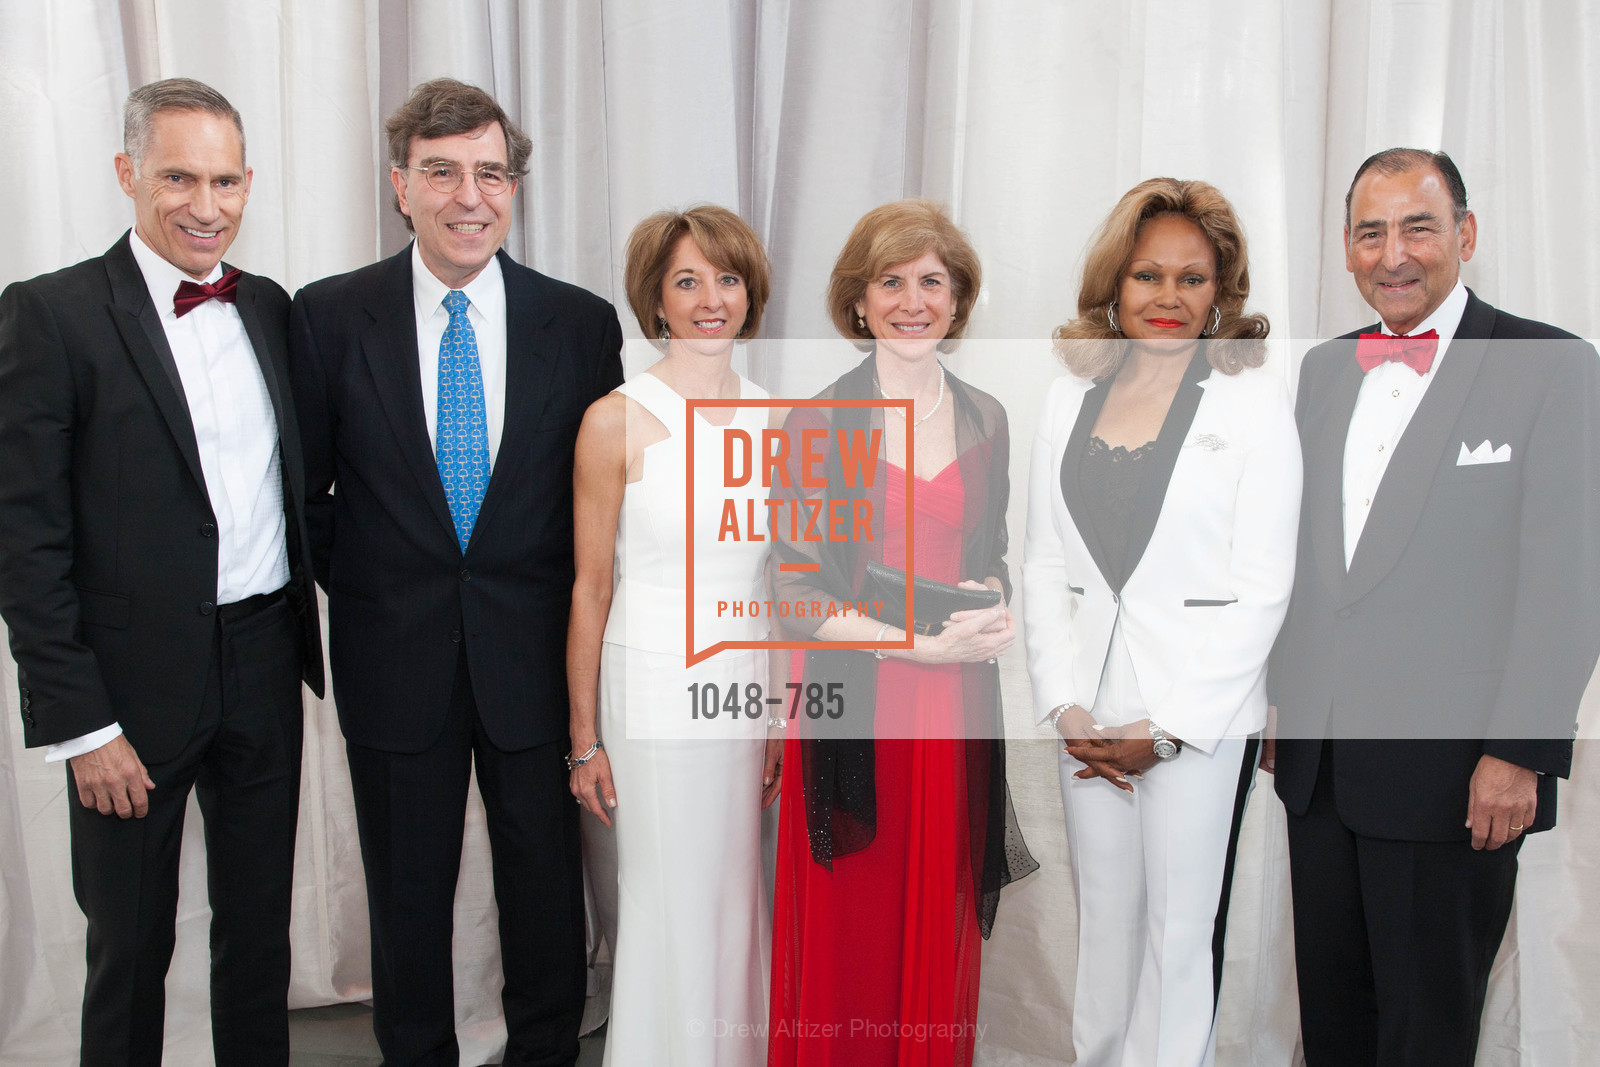 Mark Cloutier, Neal Litvack, Teresa Briggs, Gail McGovern, Janice Bryant Howroyd, Alexander Mehran, 2015 RED CROSS Gala, US, April 11th, 2015,Drew Altizer, Drew Altizer Photography, full-service agency, private events, San Francisco photographer, photographer california